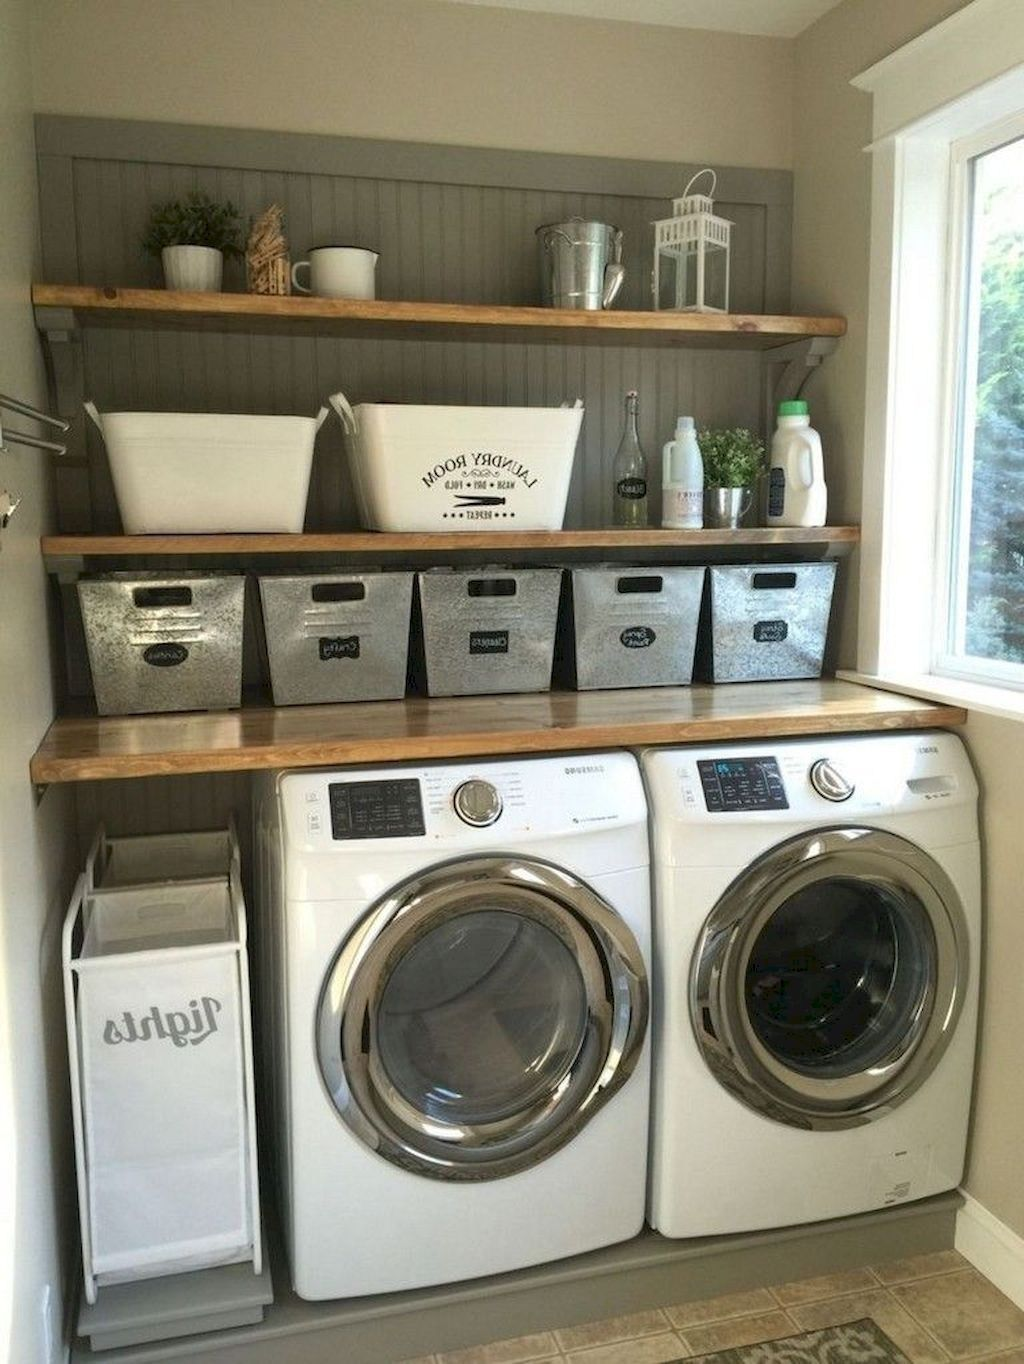 20 Cute Laundry Room Storage Shelves Ideas To Consider Laundry